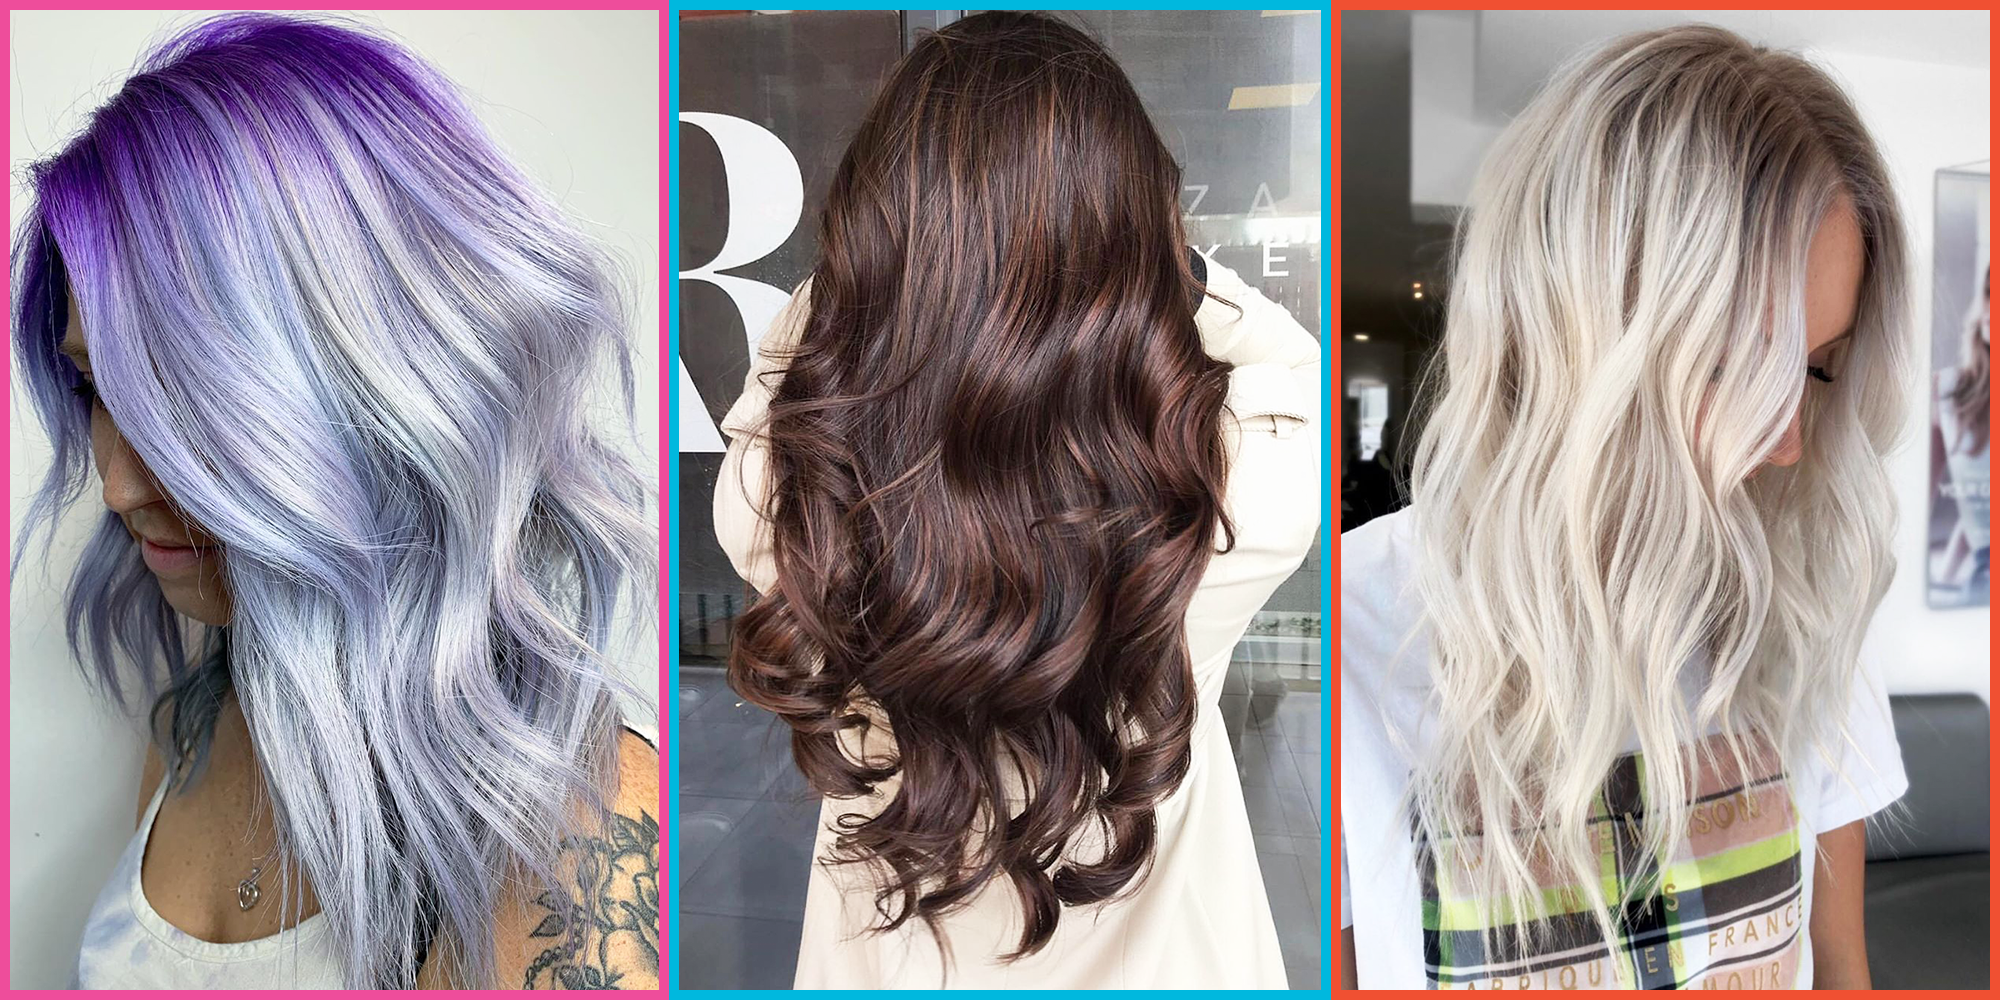 Hair Color Trends 2020.7 Best Hair Color Trends Of 2020